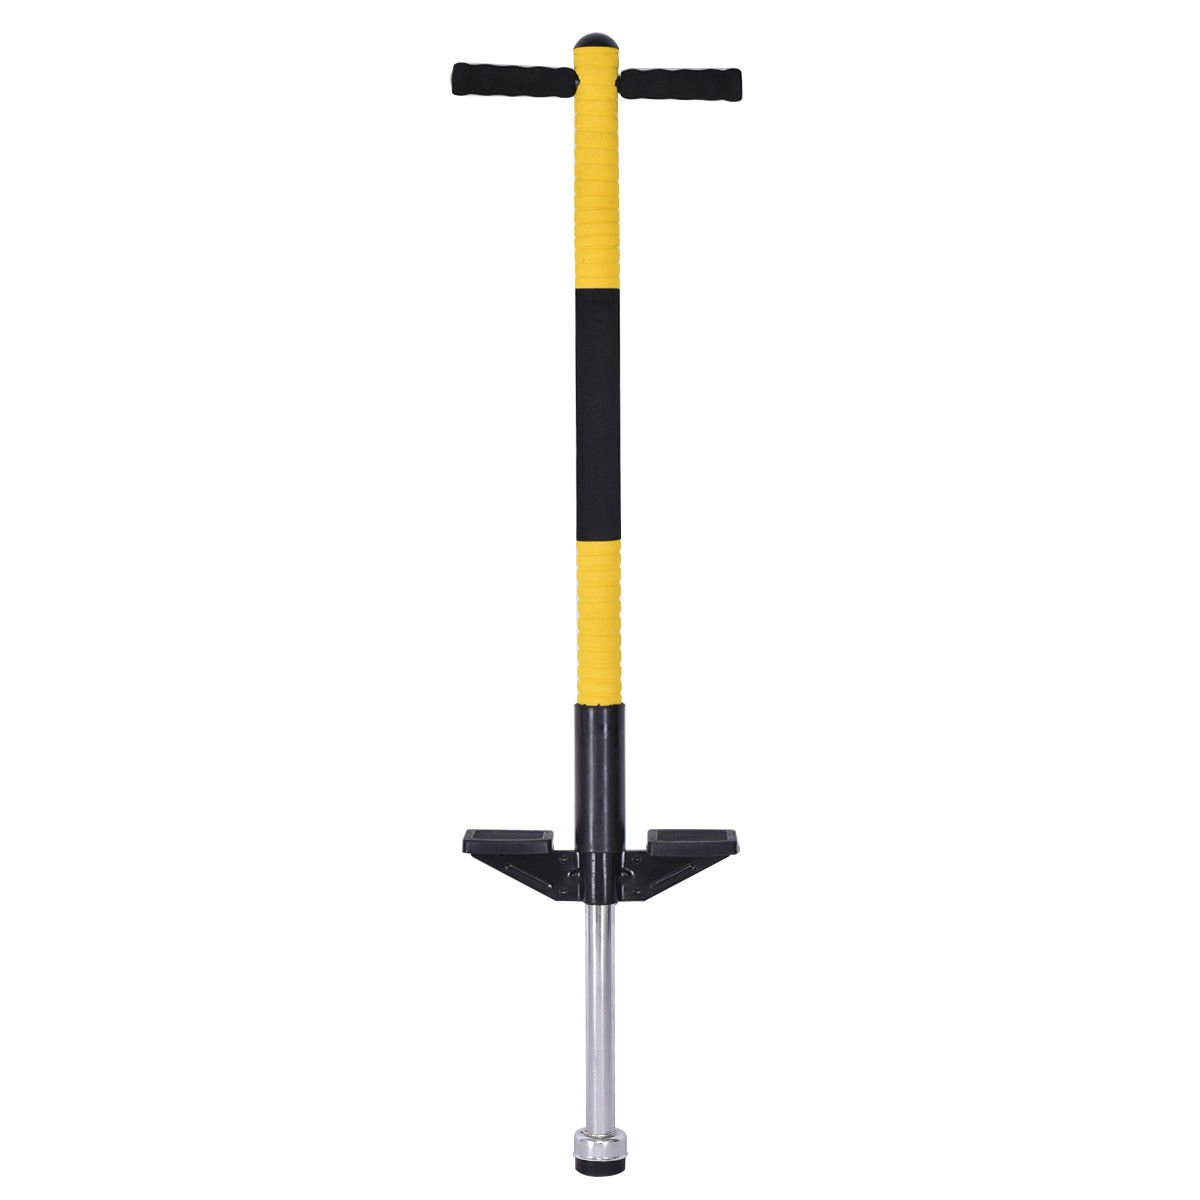 Goplus Pogo Stick Jumping Stick Jumper for Age 5 to 9 Up to 85lbs Perfect Kids Gift for Balance Training (Yellow) by Goplus